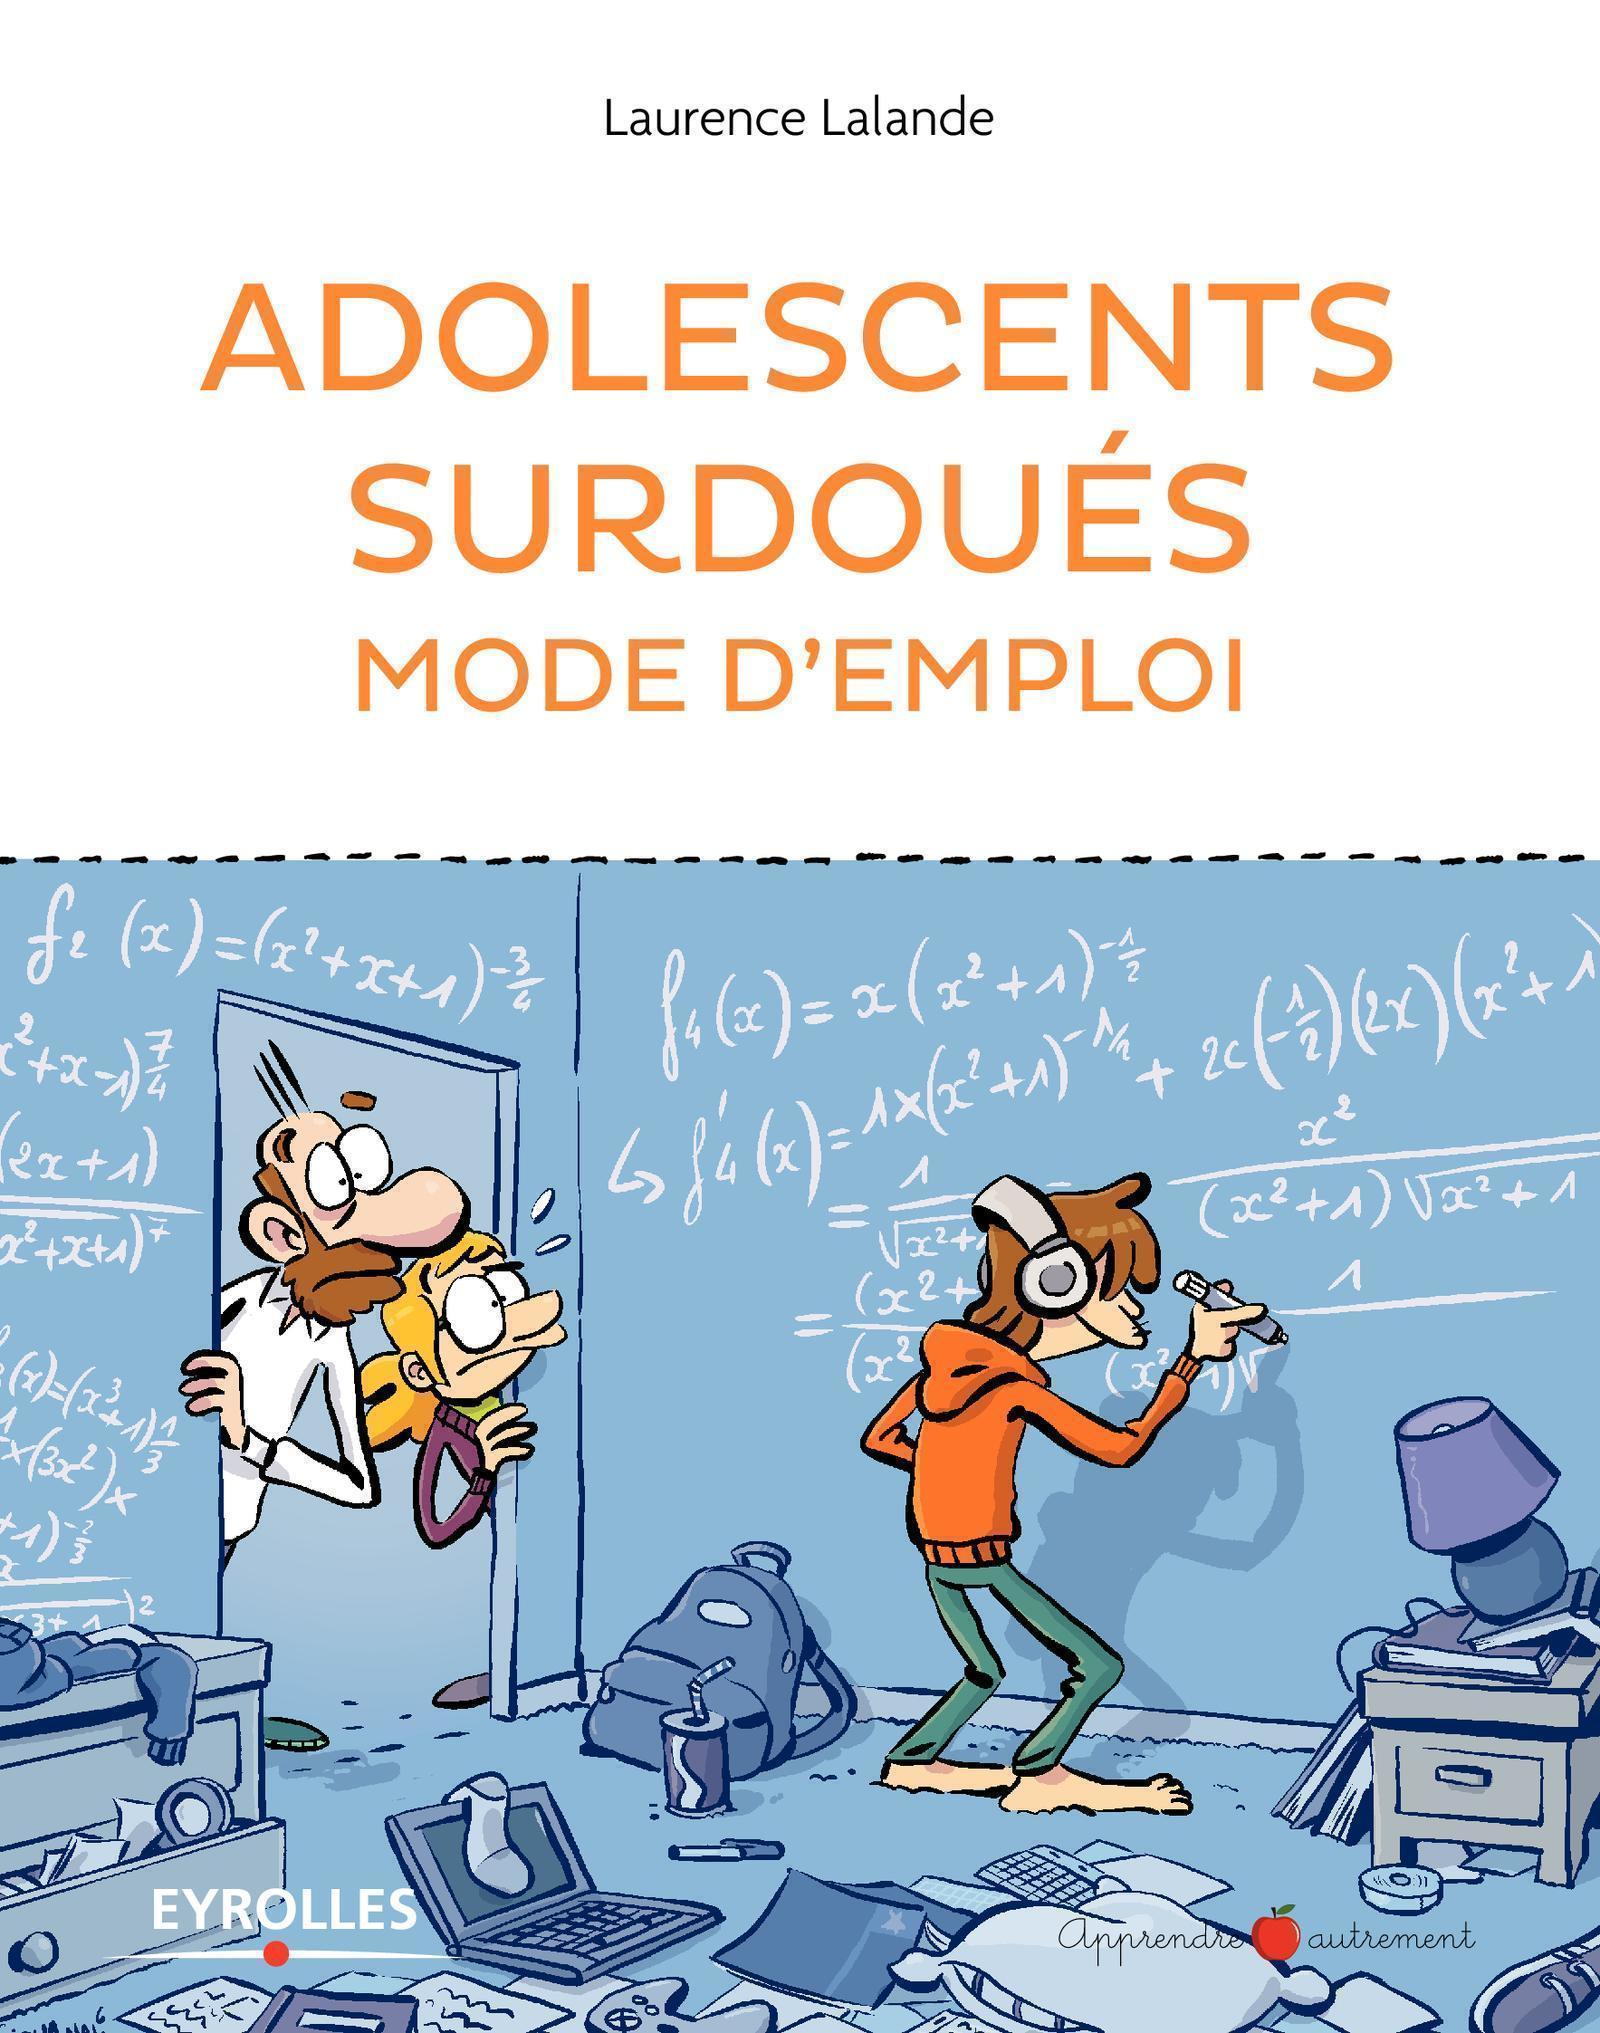 ADOLESCENTS SURDOUES MODE D EMPLOI